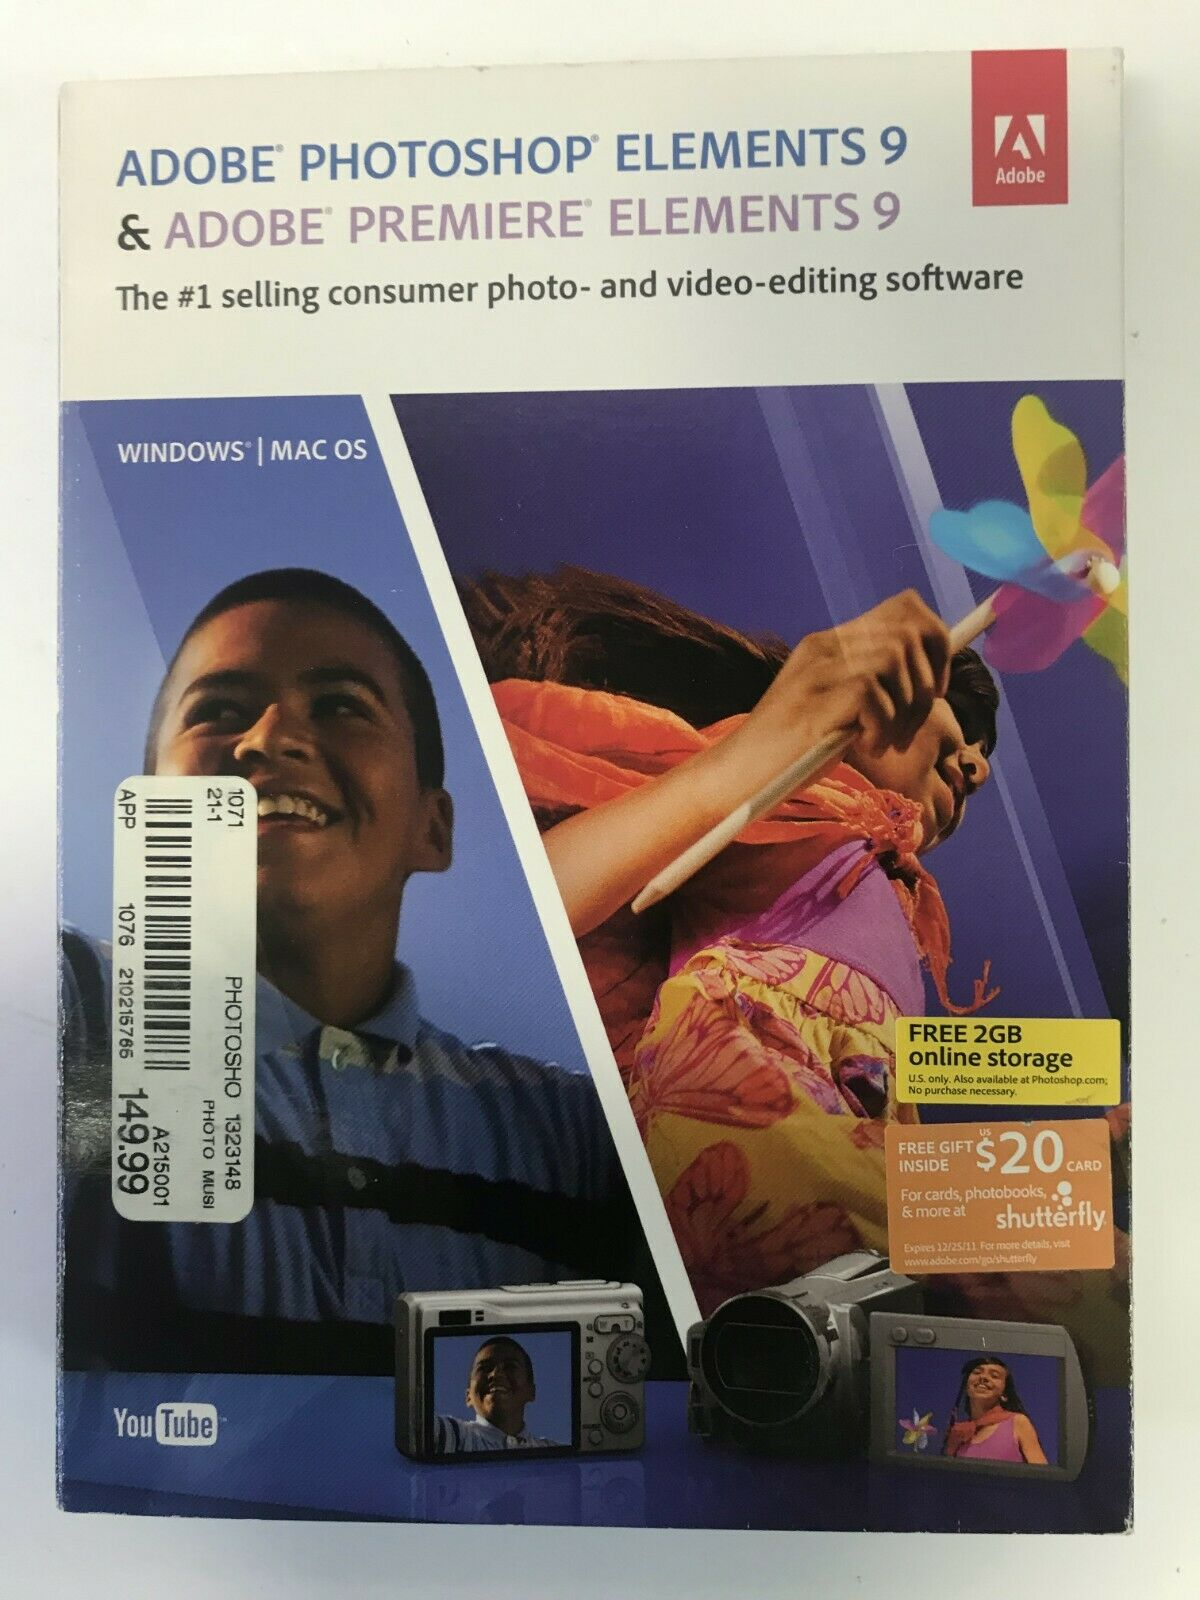 Adobe premiere elements 9 buy online